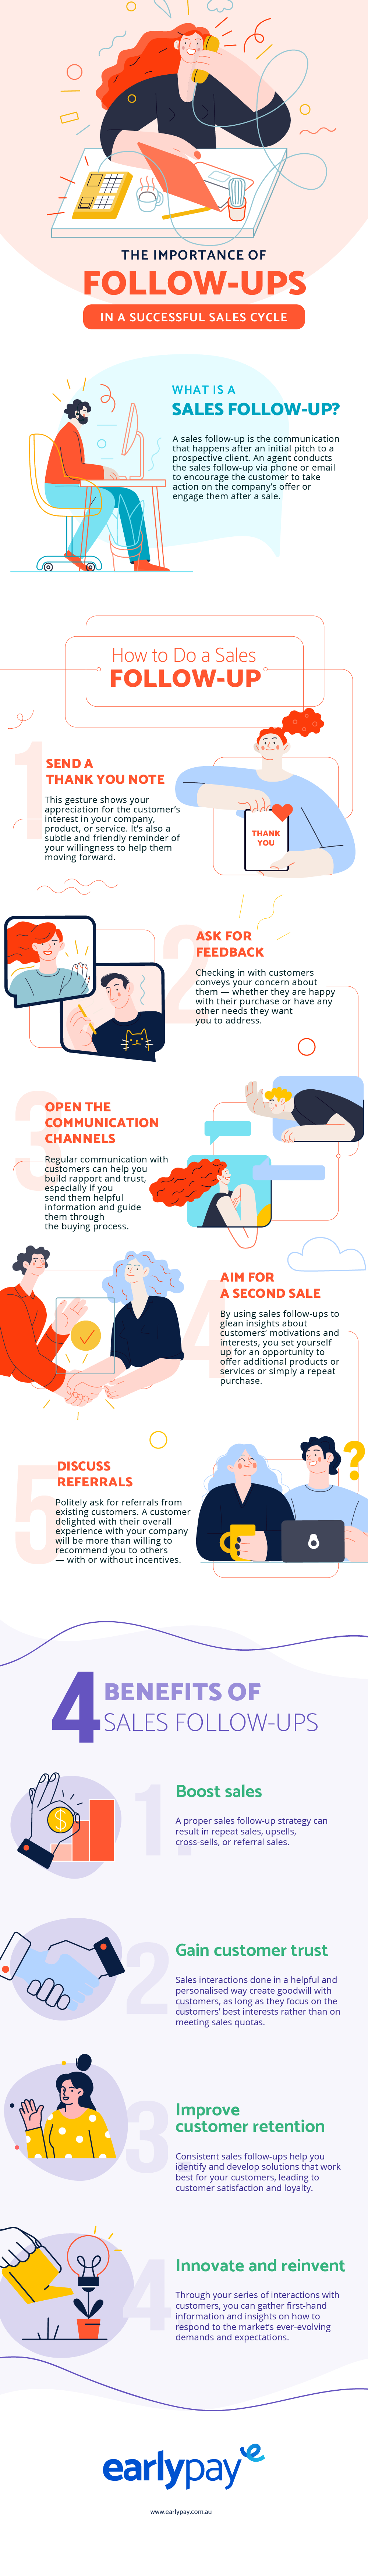 Infog_The Importance of Follow-Ups in a Successful Sales Cycle